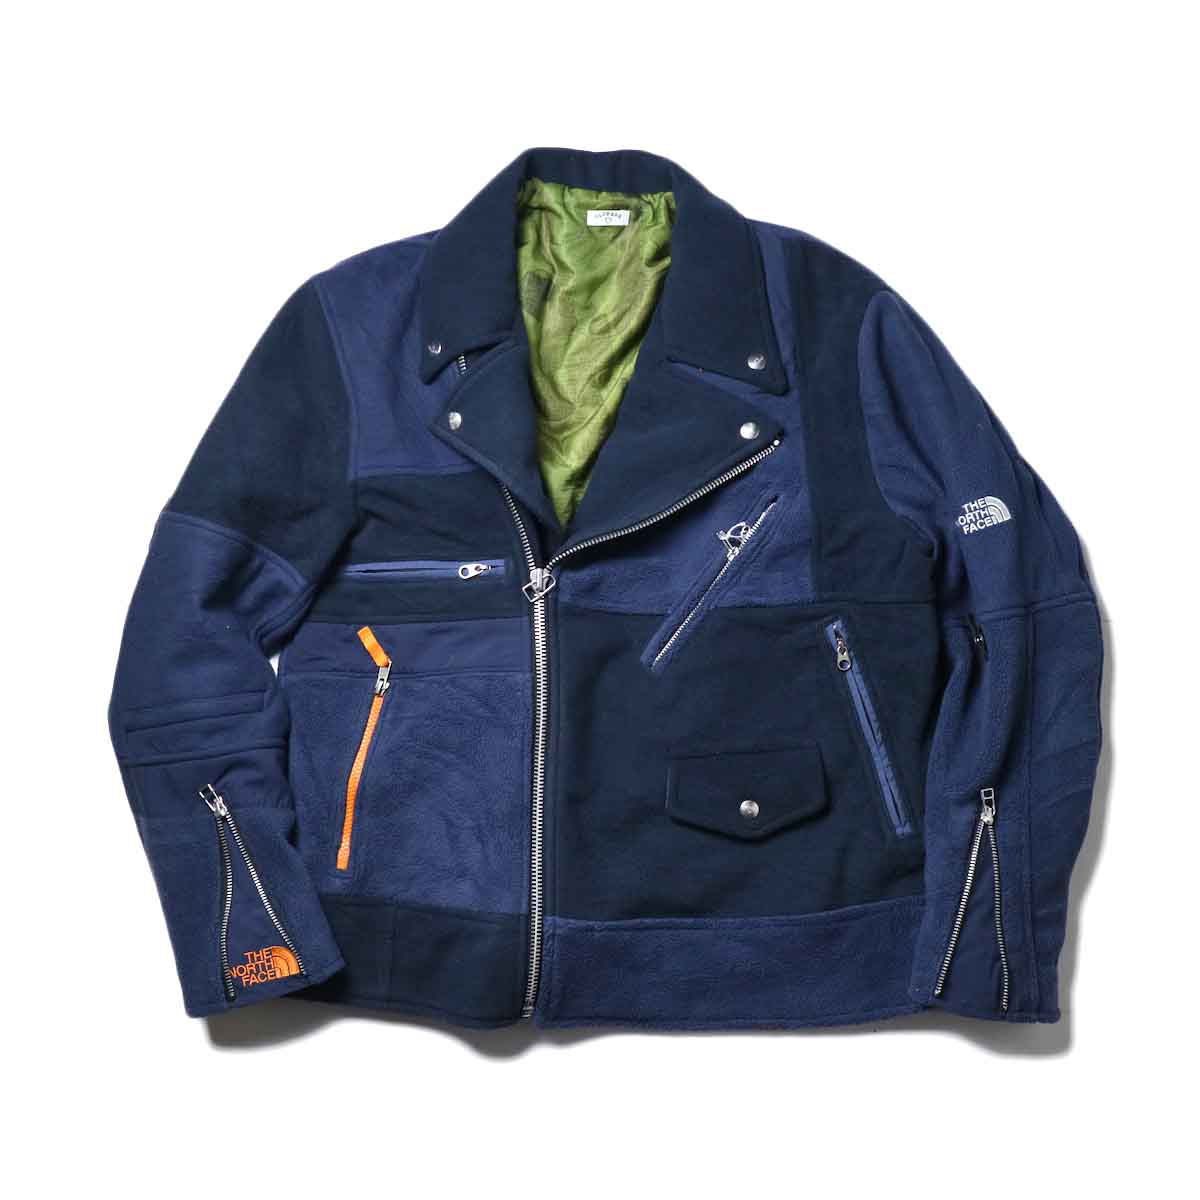 OLD PARK / Oversized Riders Jacket -Outdoor